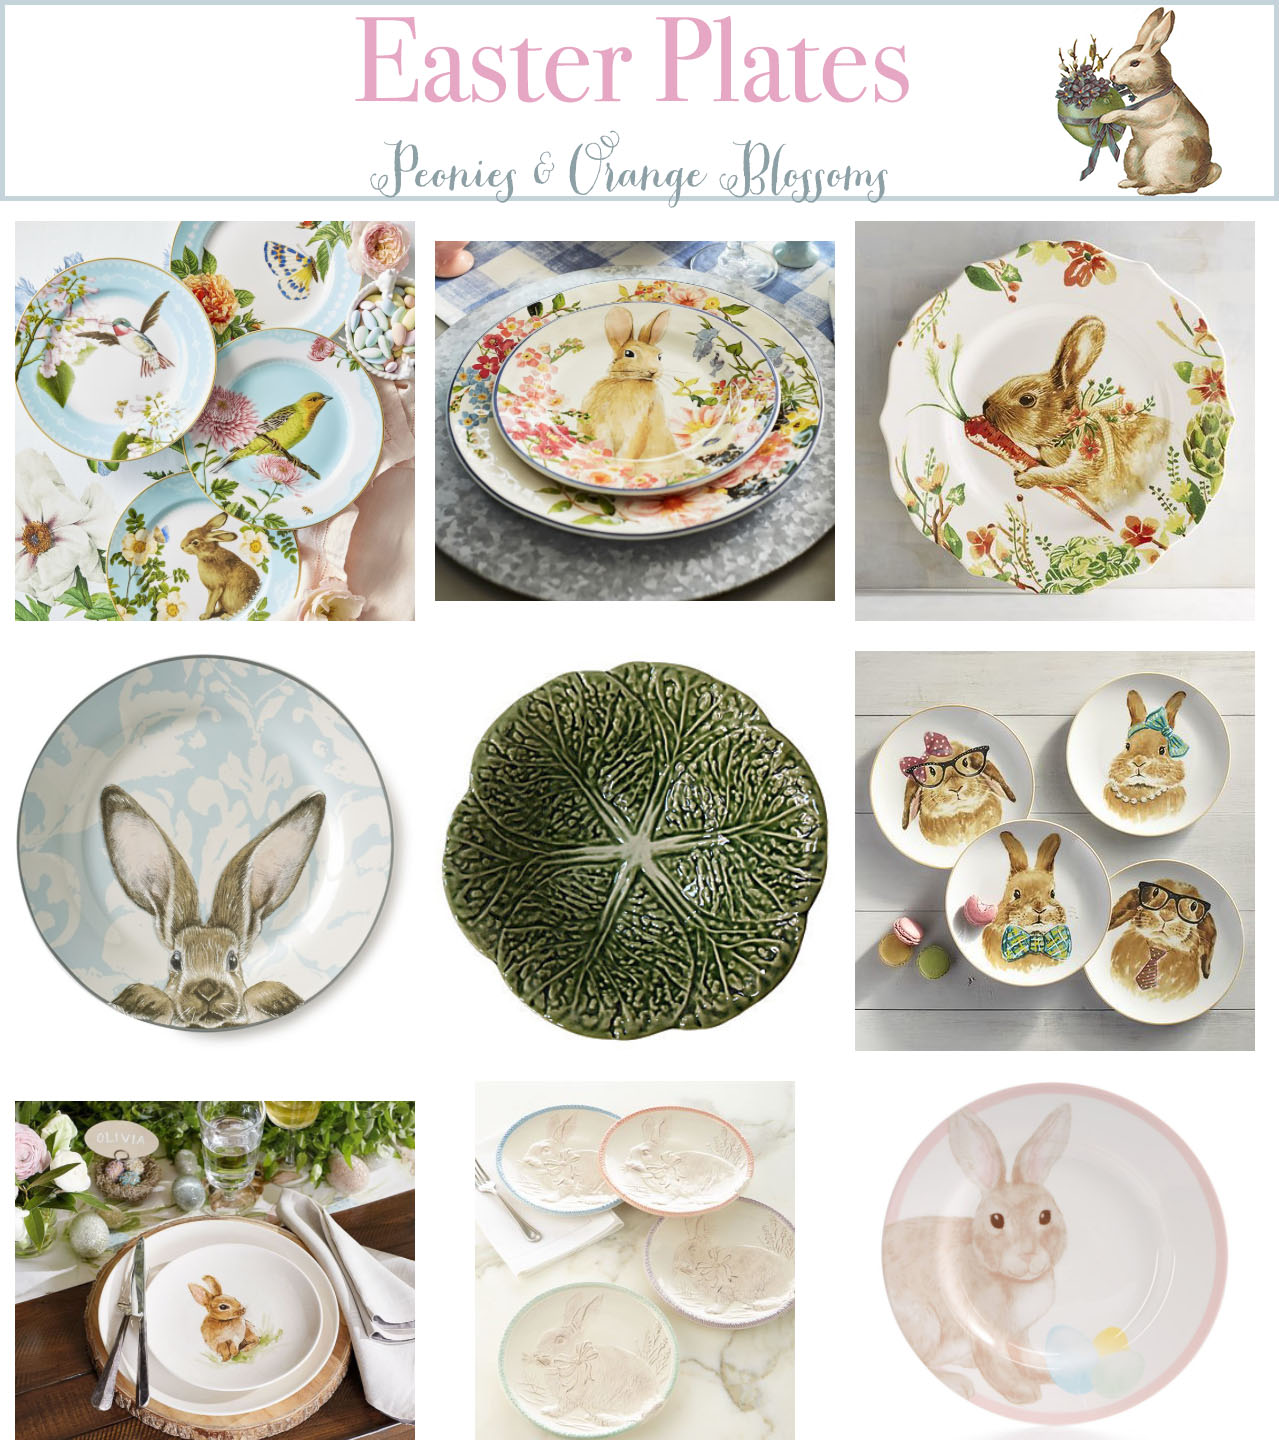 Easter Plates - Petite Haus